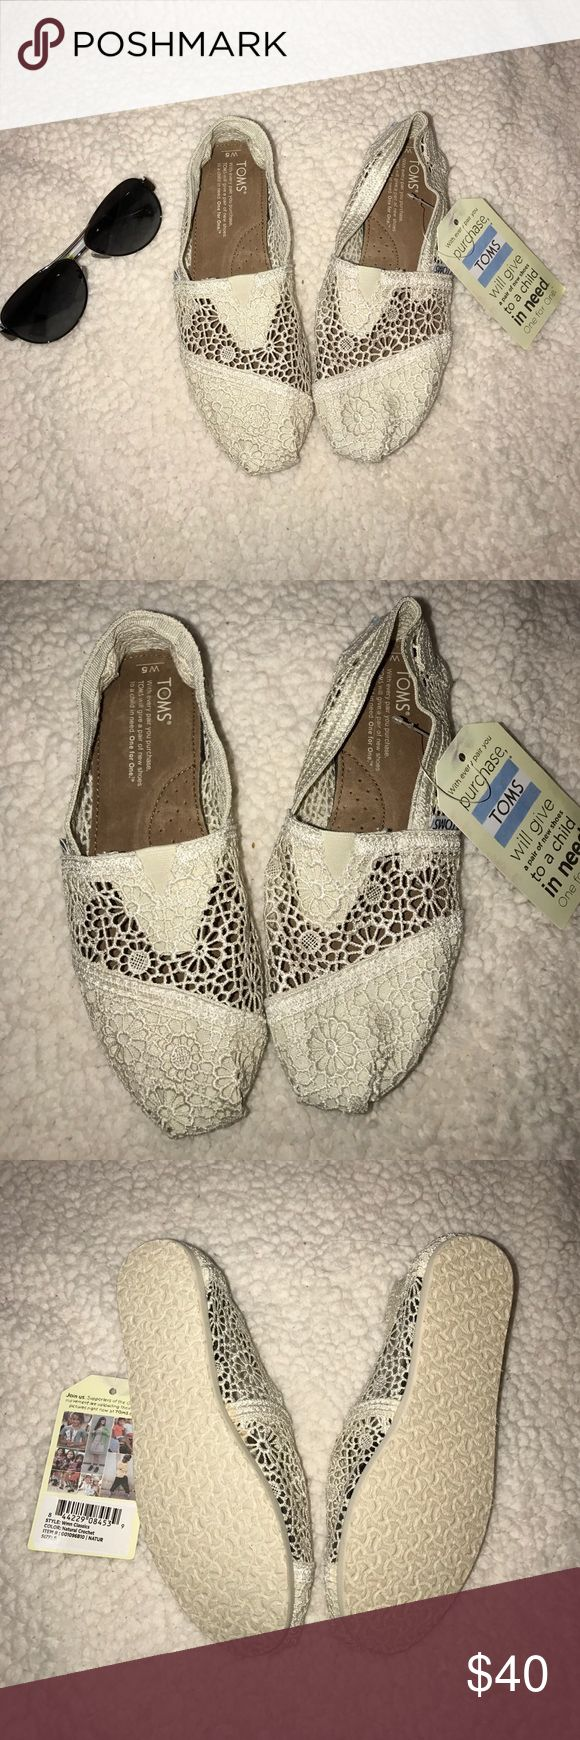 *NWT*Crochet TOMS size 5 NWT Crochet TOMS in size 5. TOMS Shoes